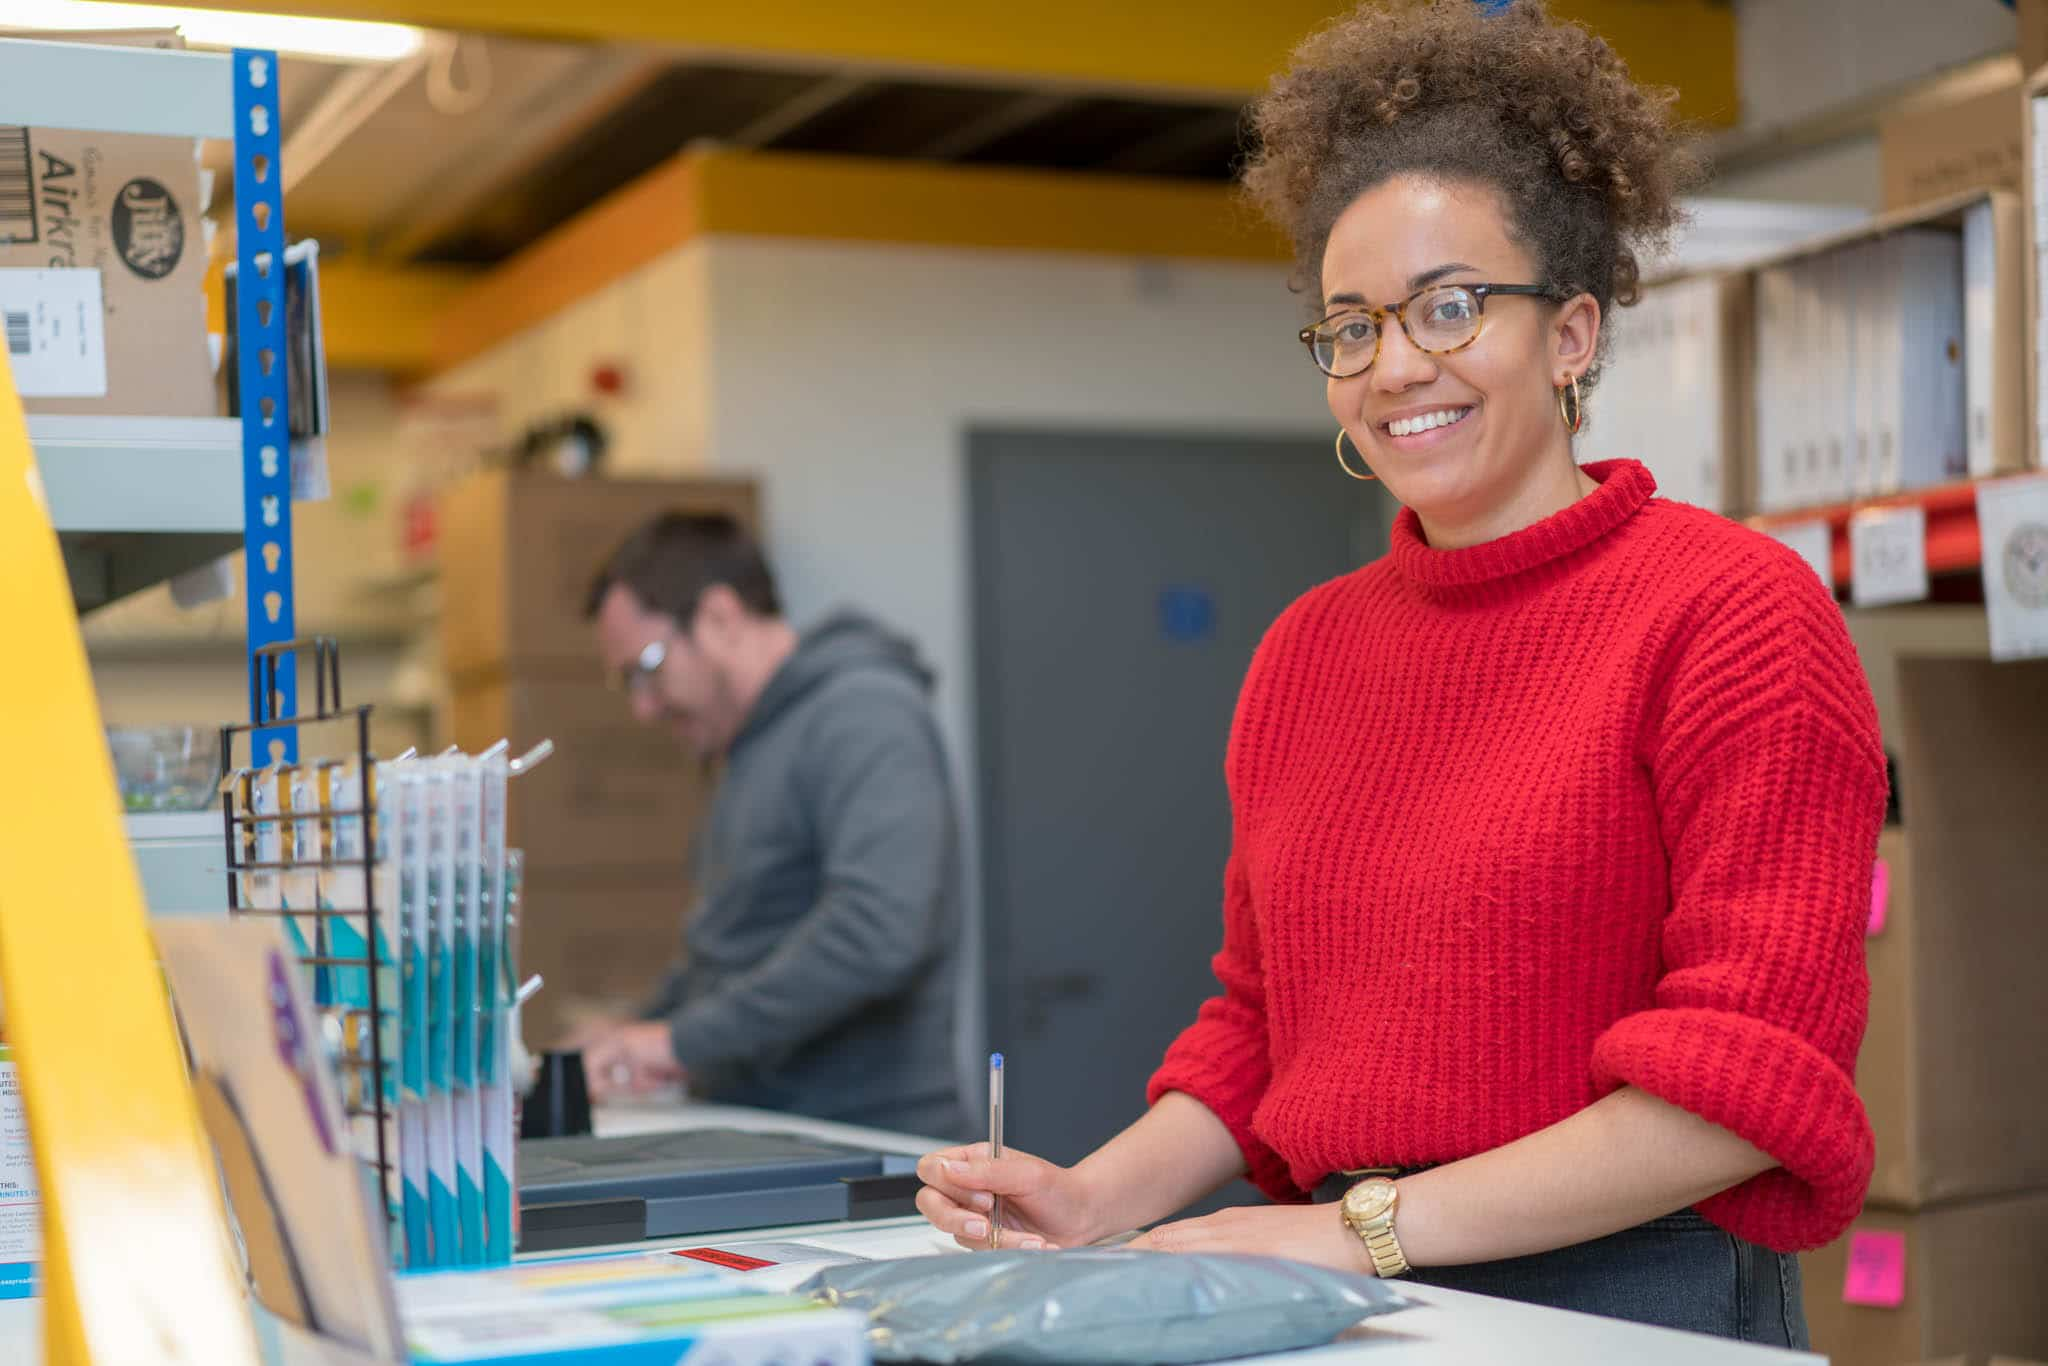 woman in red jumper smiling at camera writing legal status notes